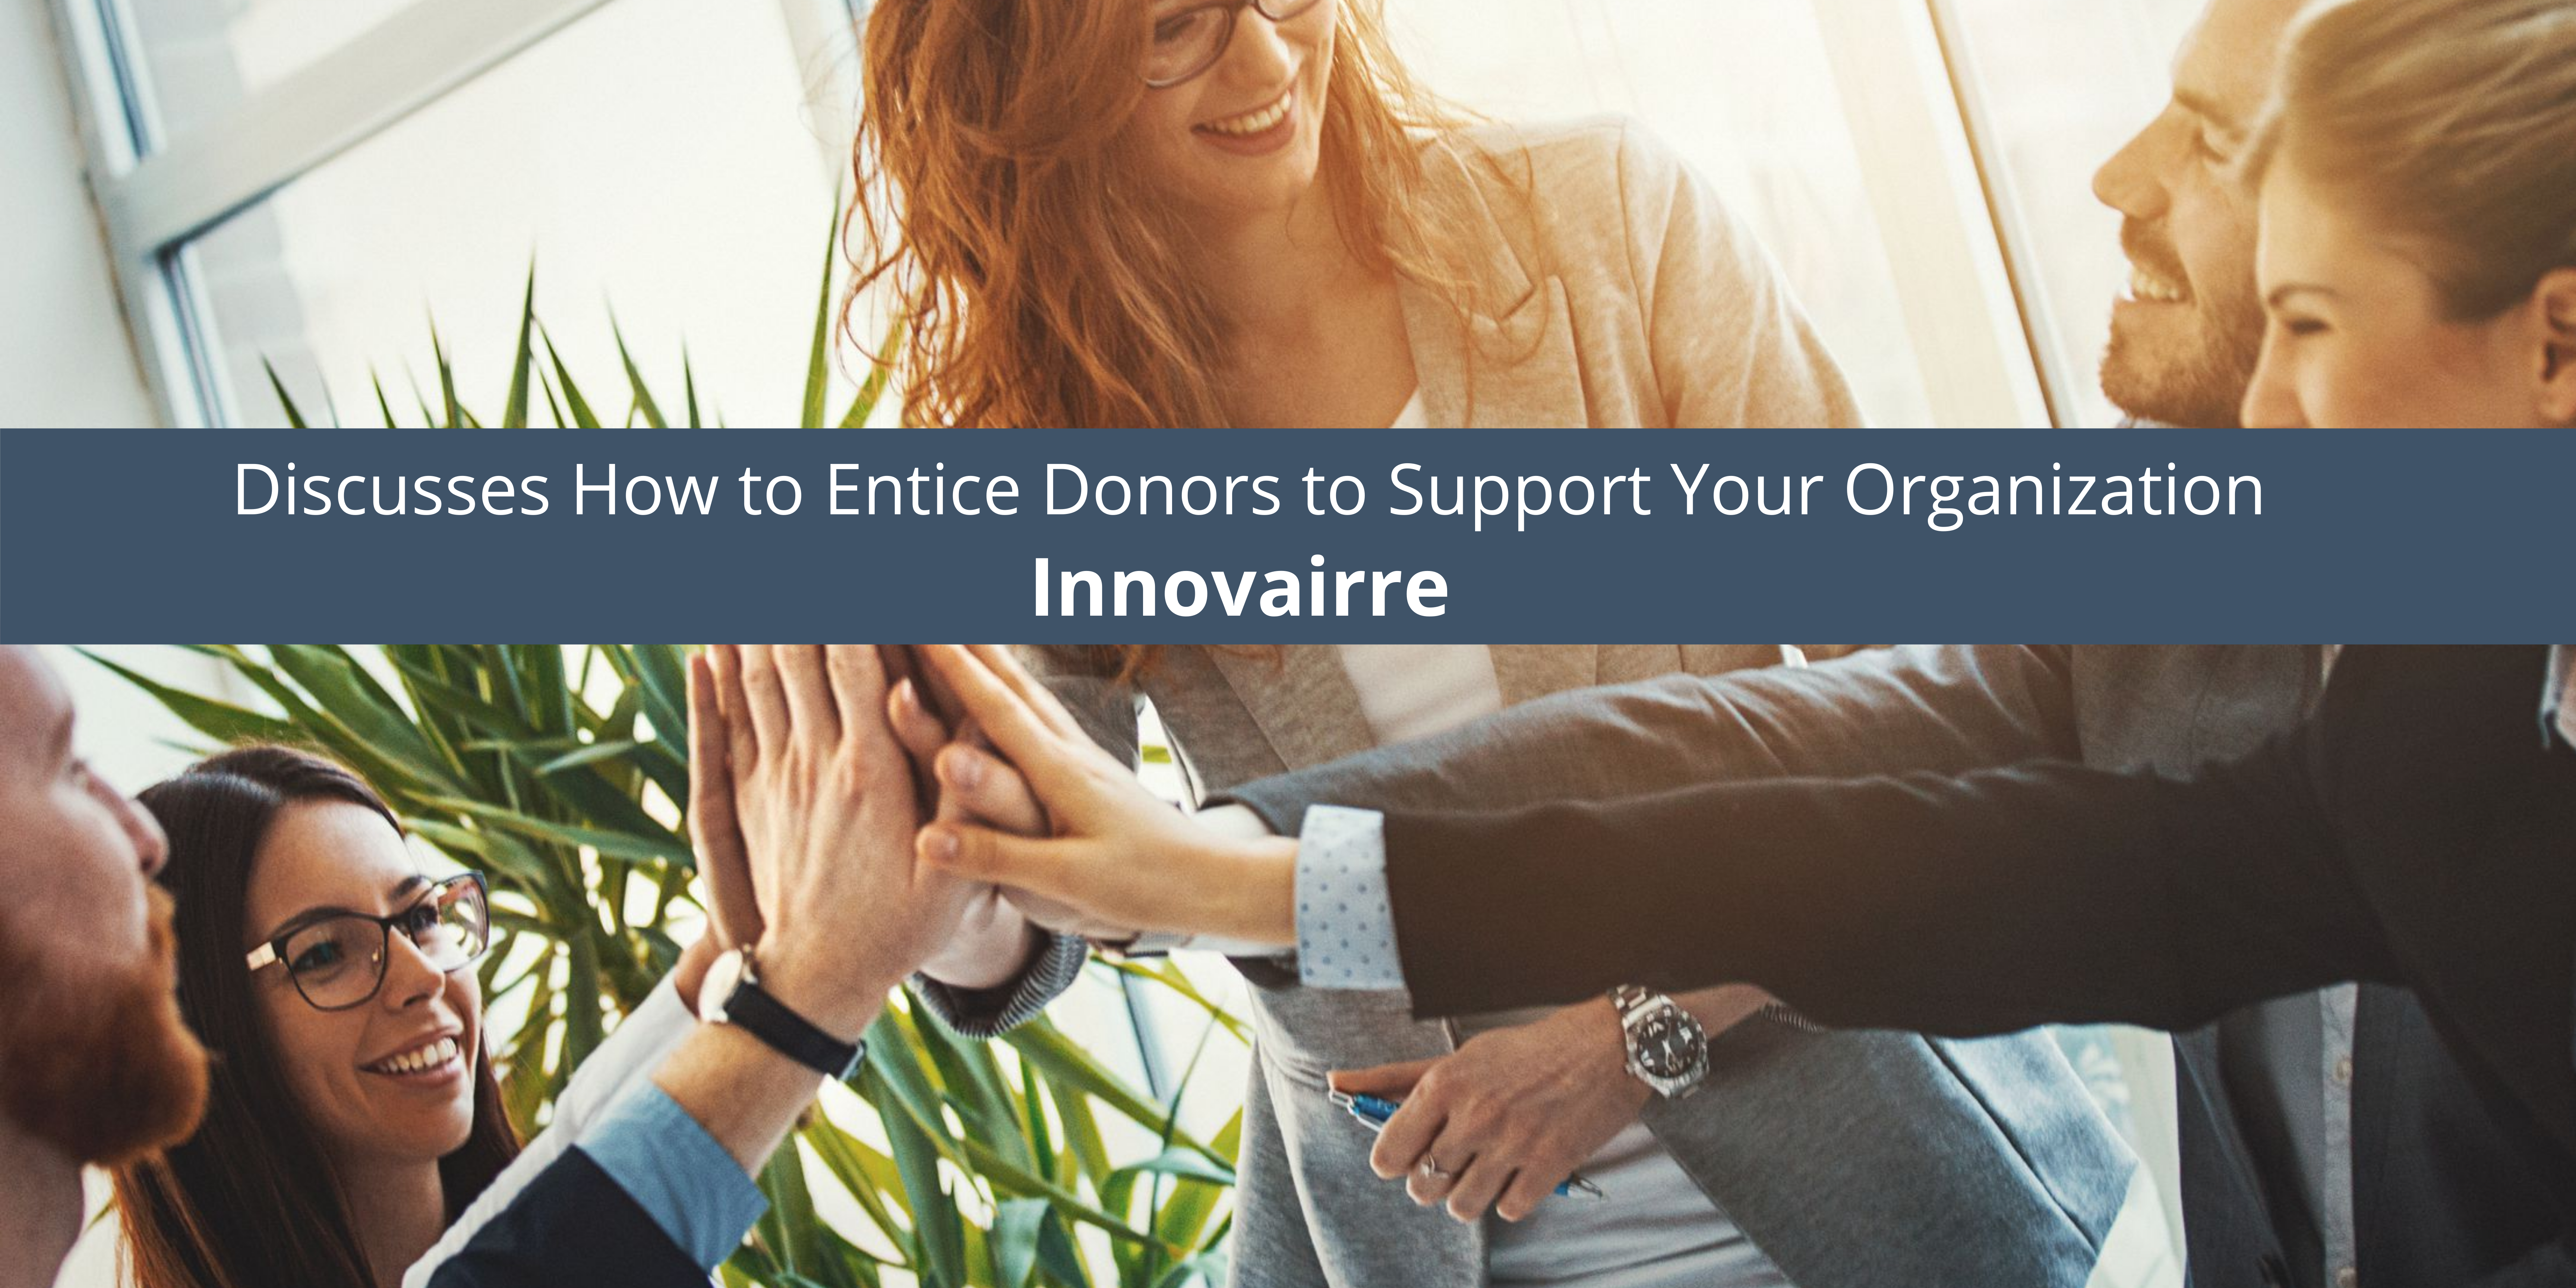 Innovairre Discusses How to Entice Donors to Support Your Organization